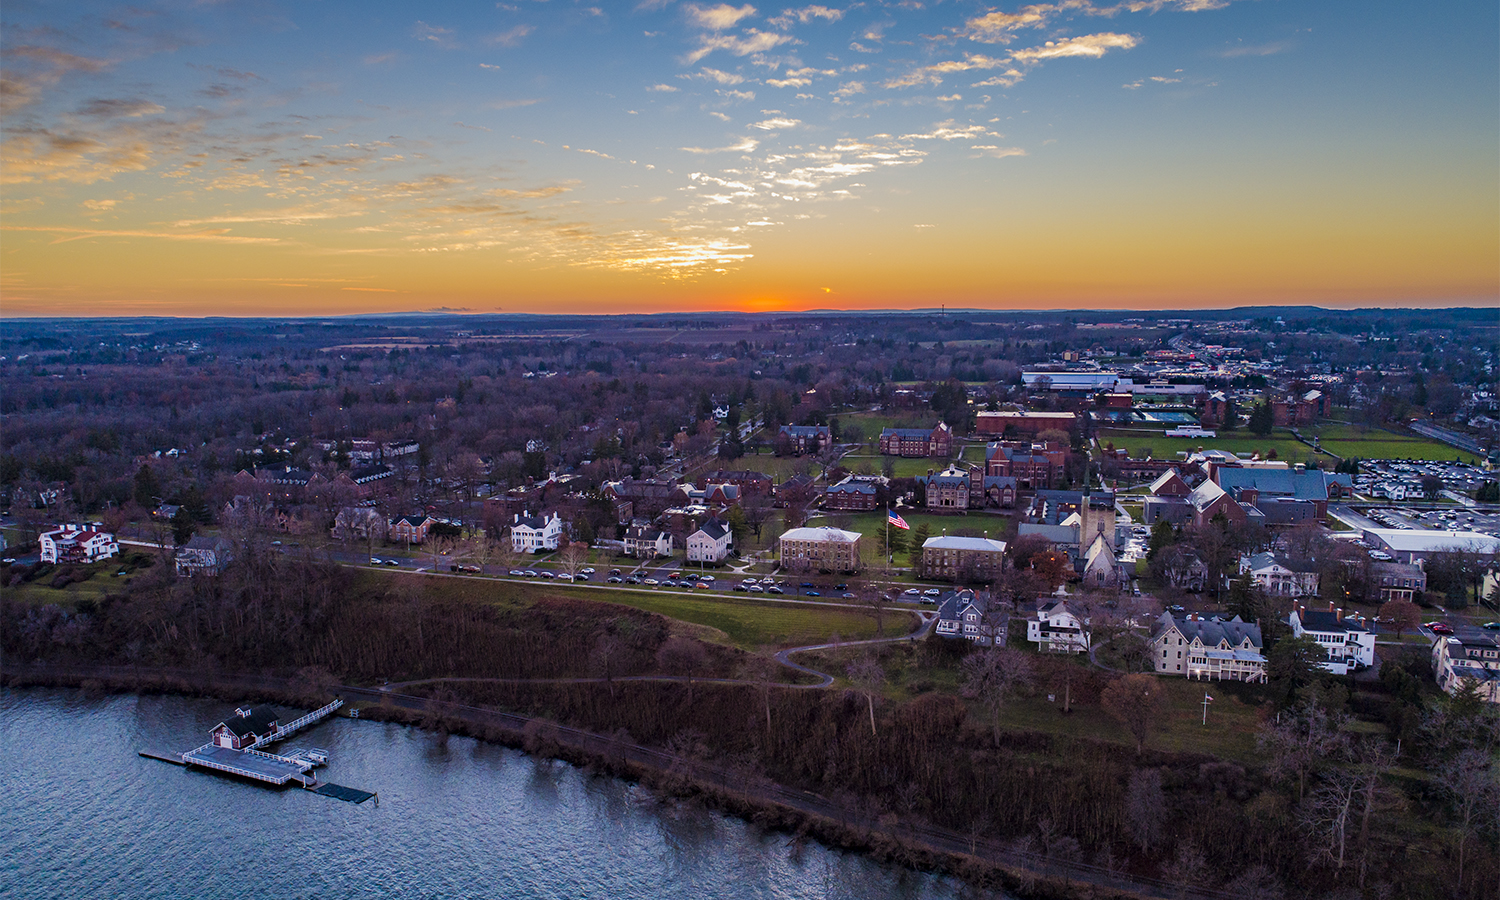 Campus Sunset Aerial